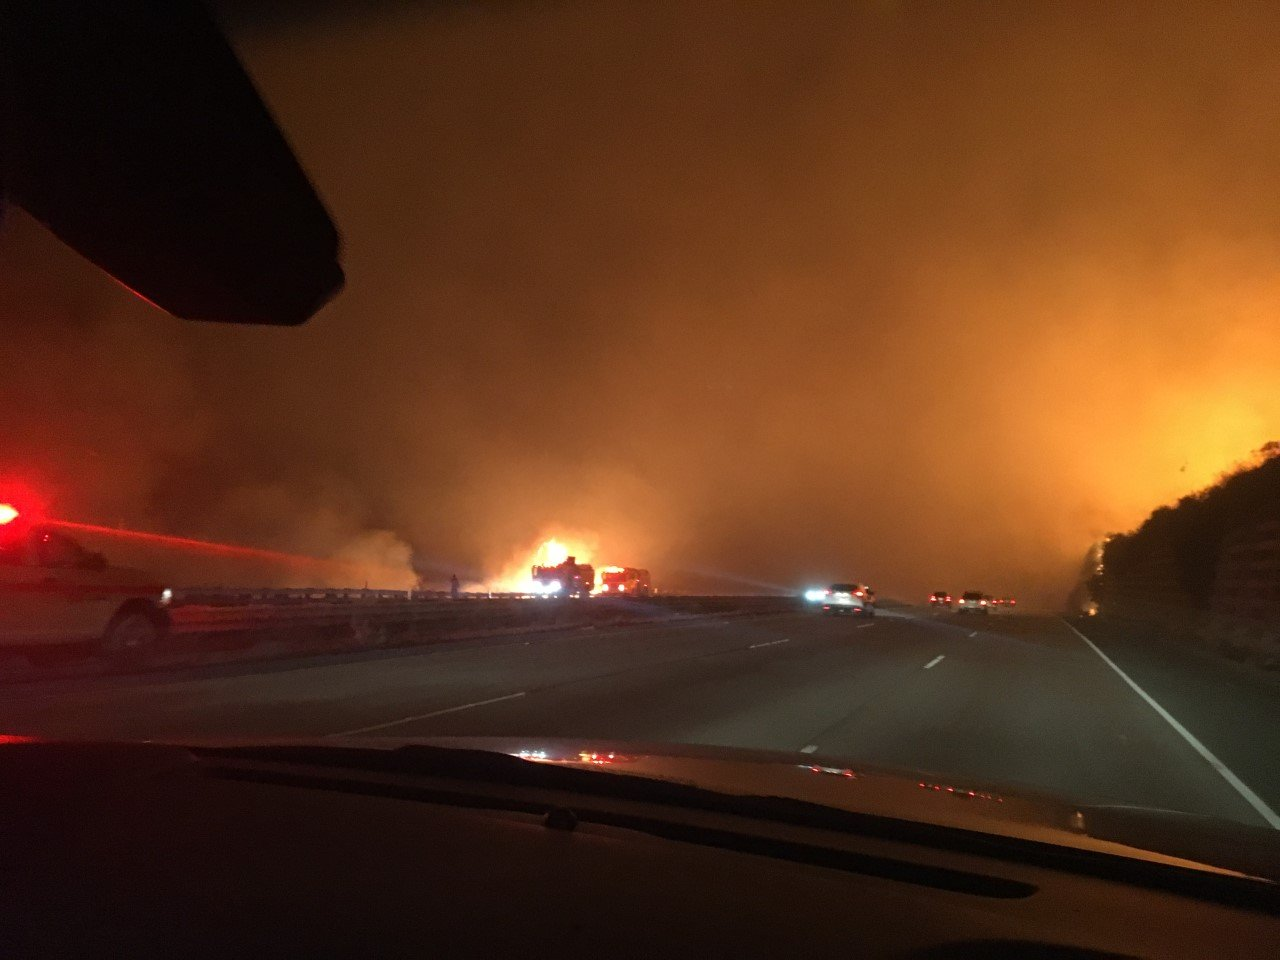 "<div class=""meta image-caption""><div class=""origin-logo origin-image none""><span>none</span></div><span class=""caption-text"">''Use caution on U/S 101 between Ventura and Santa Barbara. Fire is burning on both sides of the highway,'' the Ventura Co. Sheriff wrote on Twitter. (VENTURASHERIFF/Twitter)</span></div>"